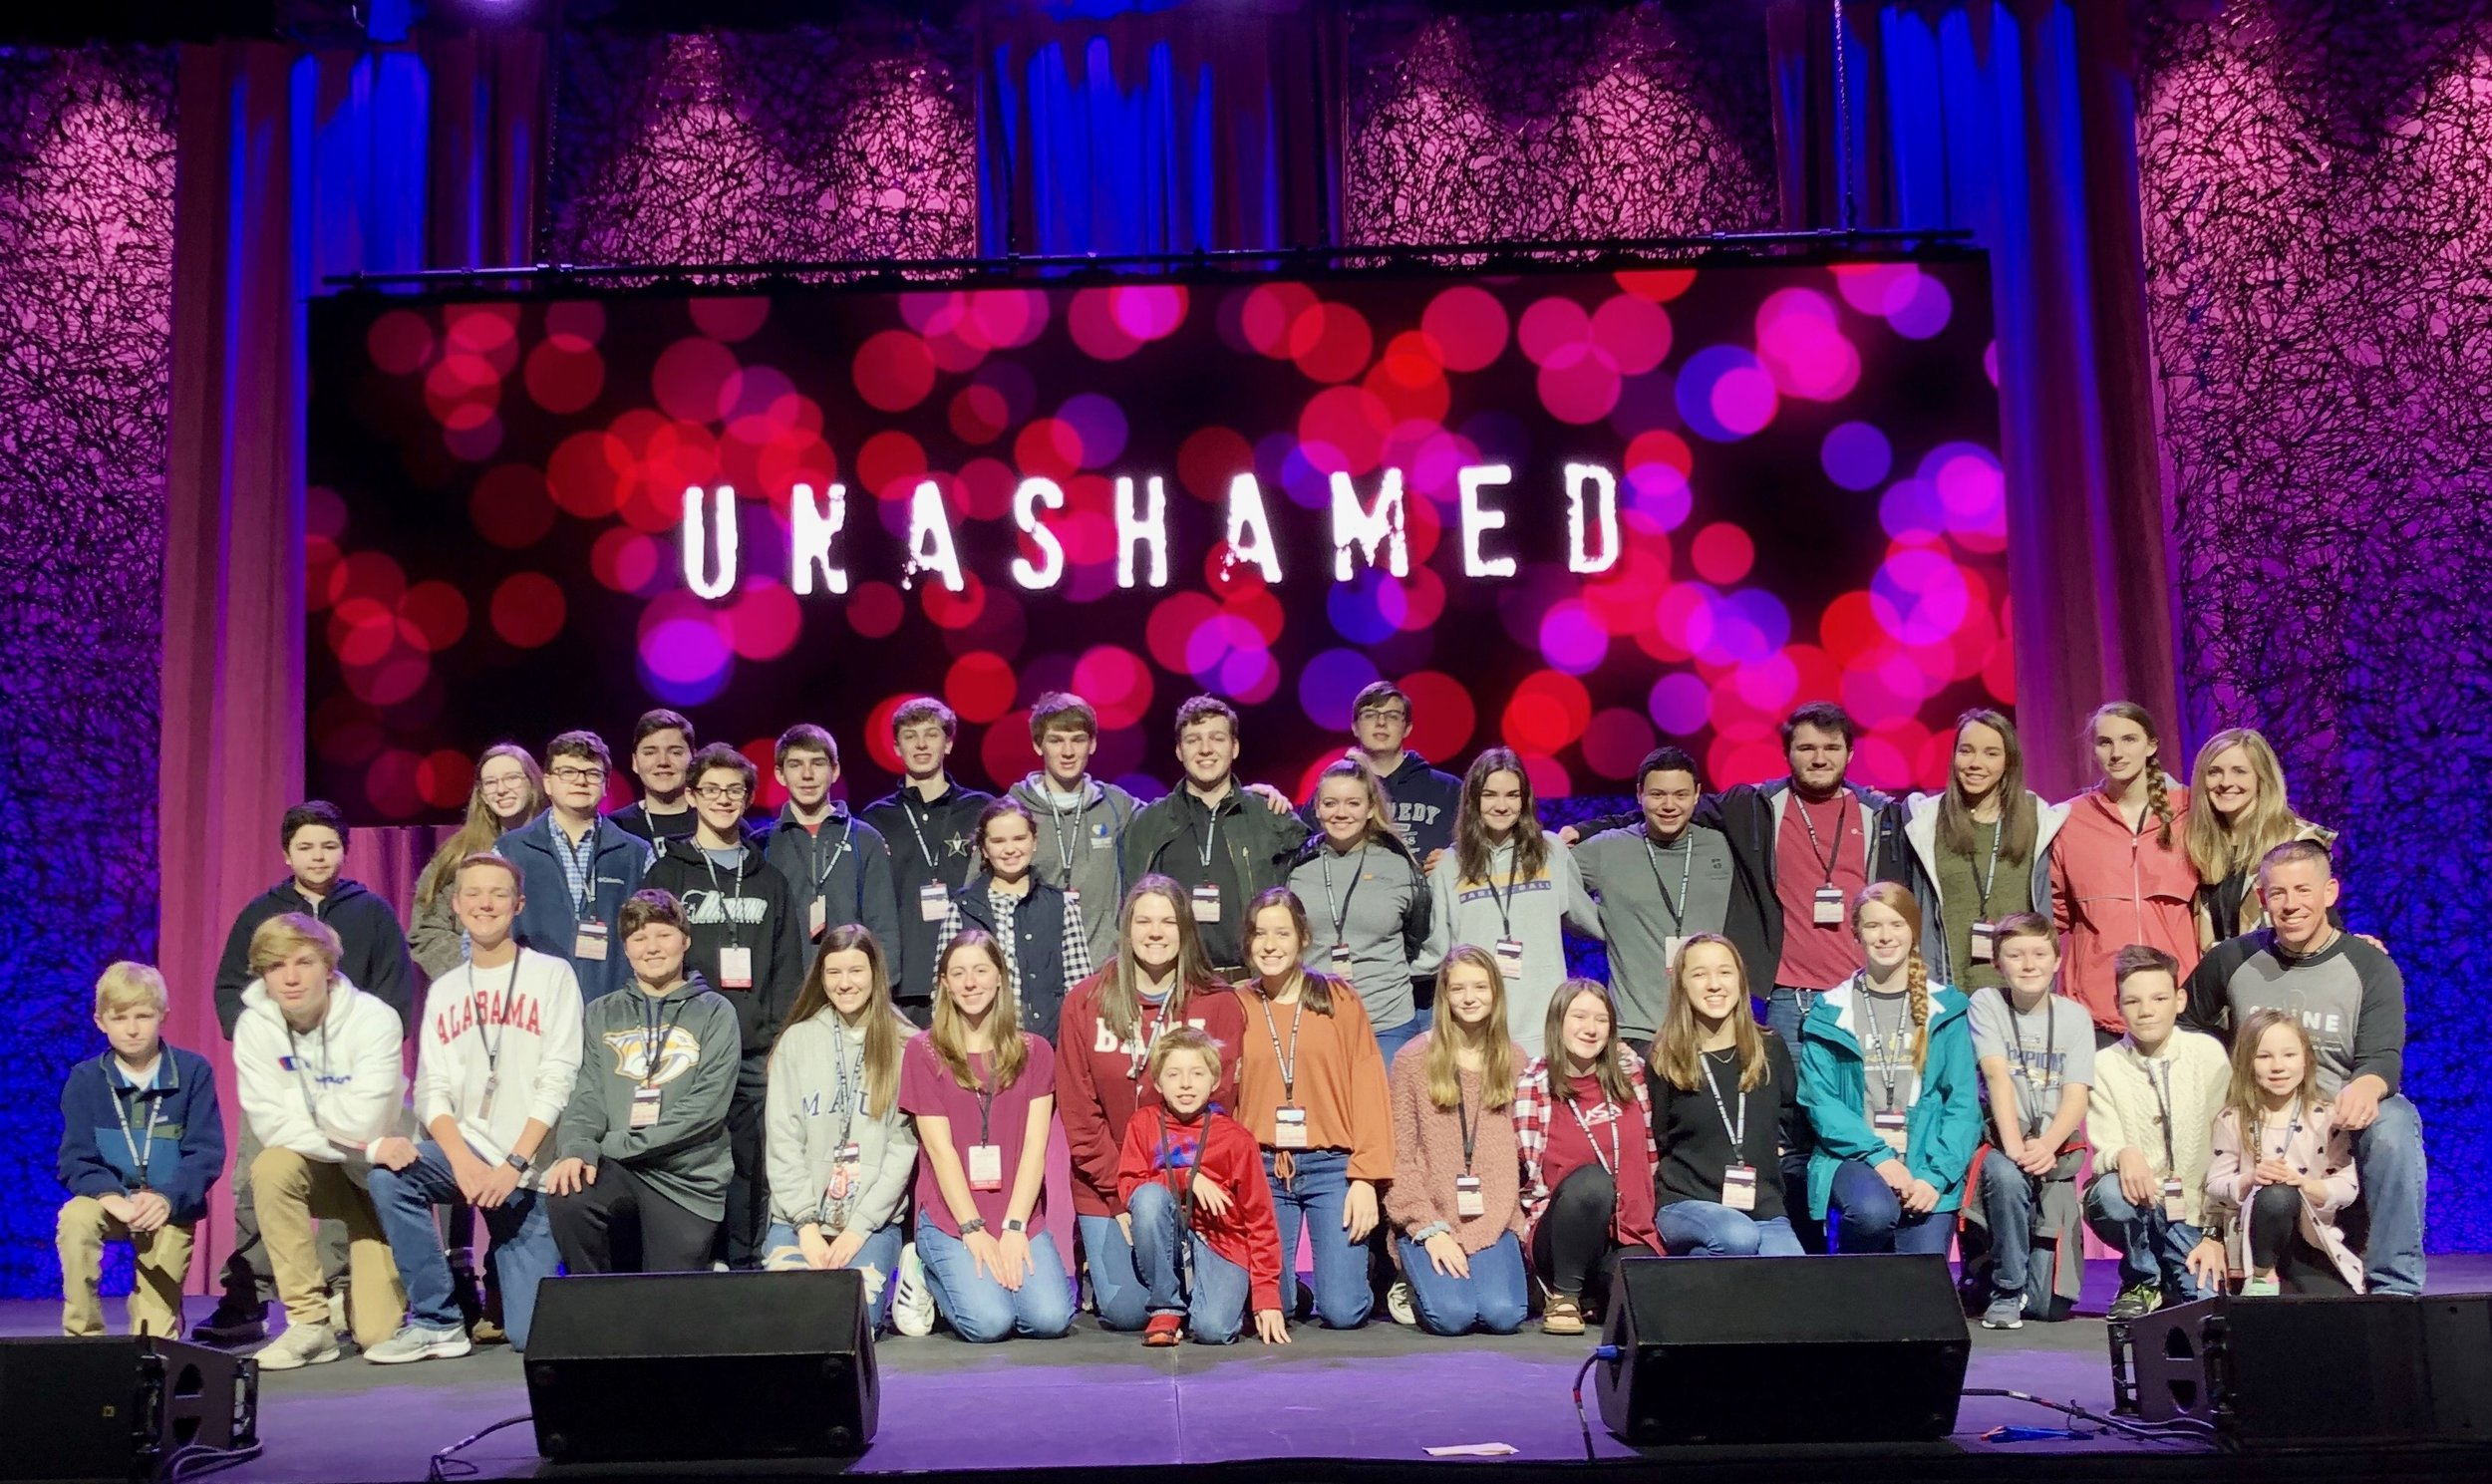 Awesome weekend at Challenge Youth Conference, we are stronger together because of what the Lord does within us and through us! #AMEN